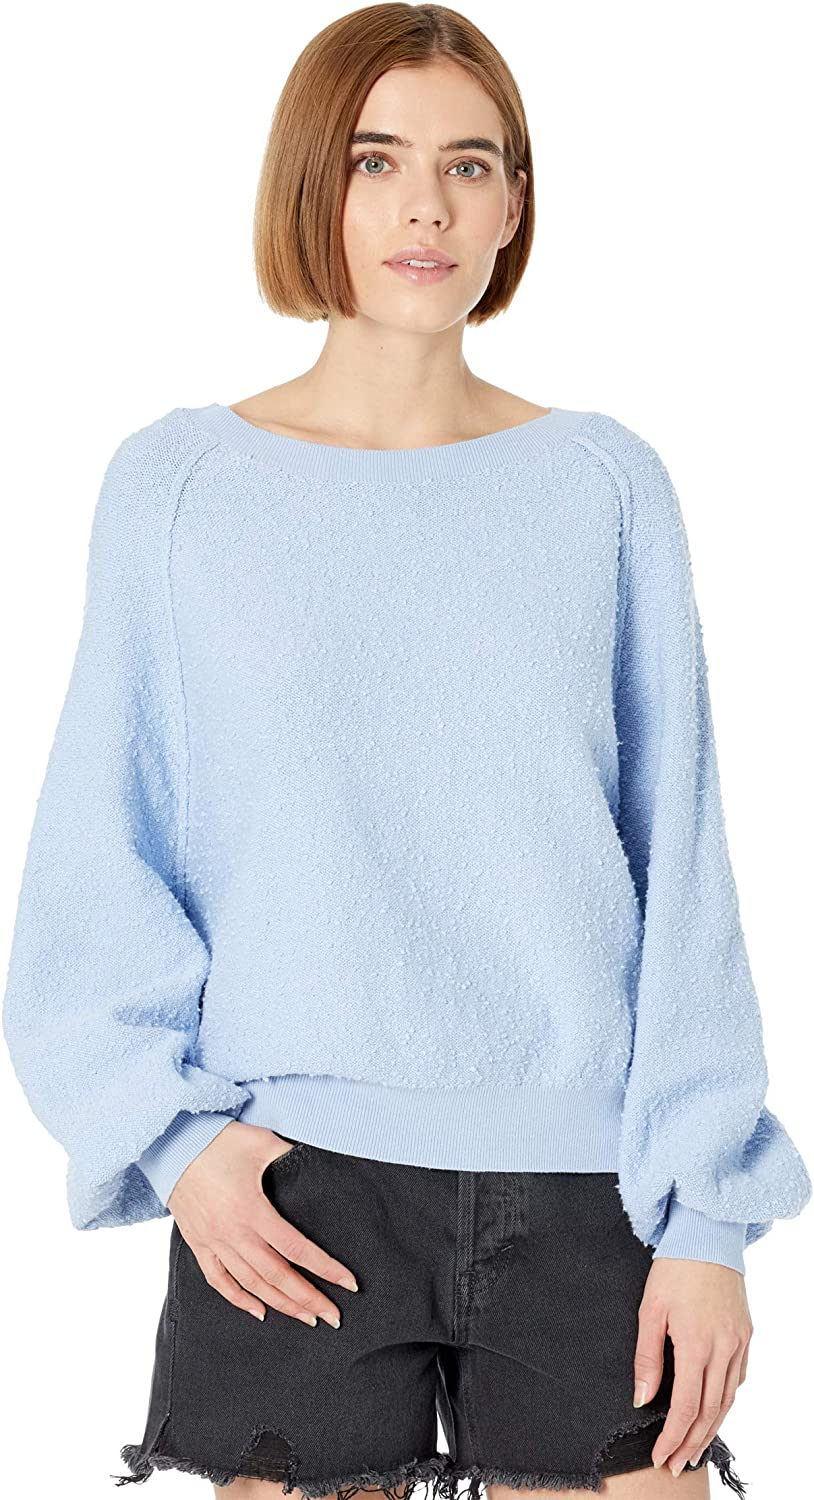 Free People Women's Found My Friend Pullover Sweater